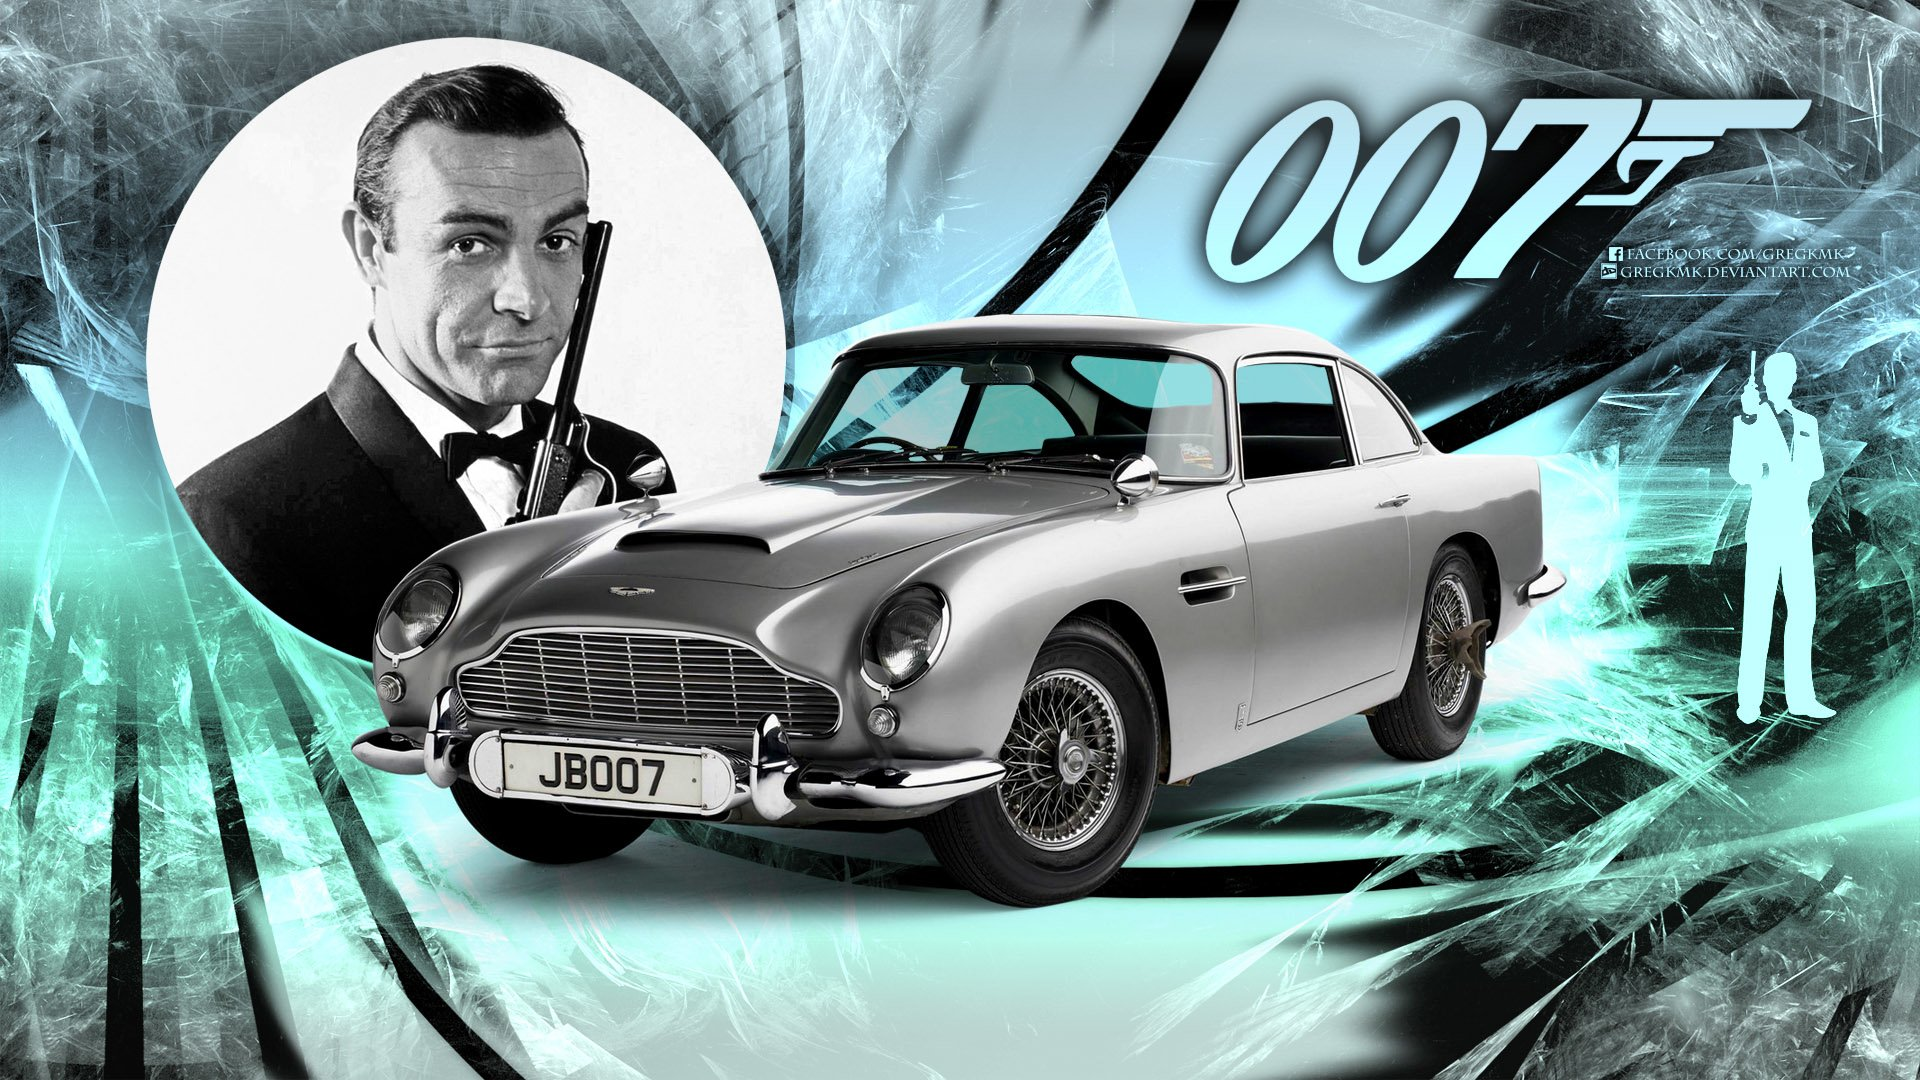 james bond wallpaper iphone 6 plus